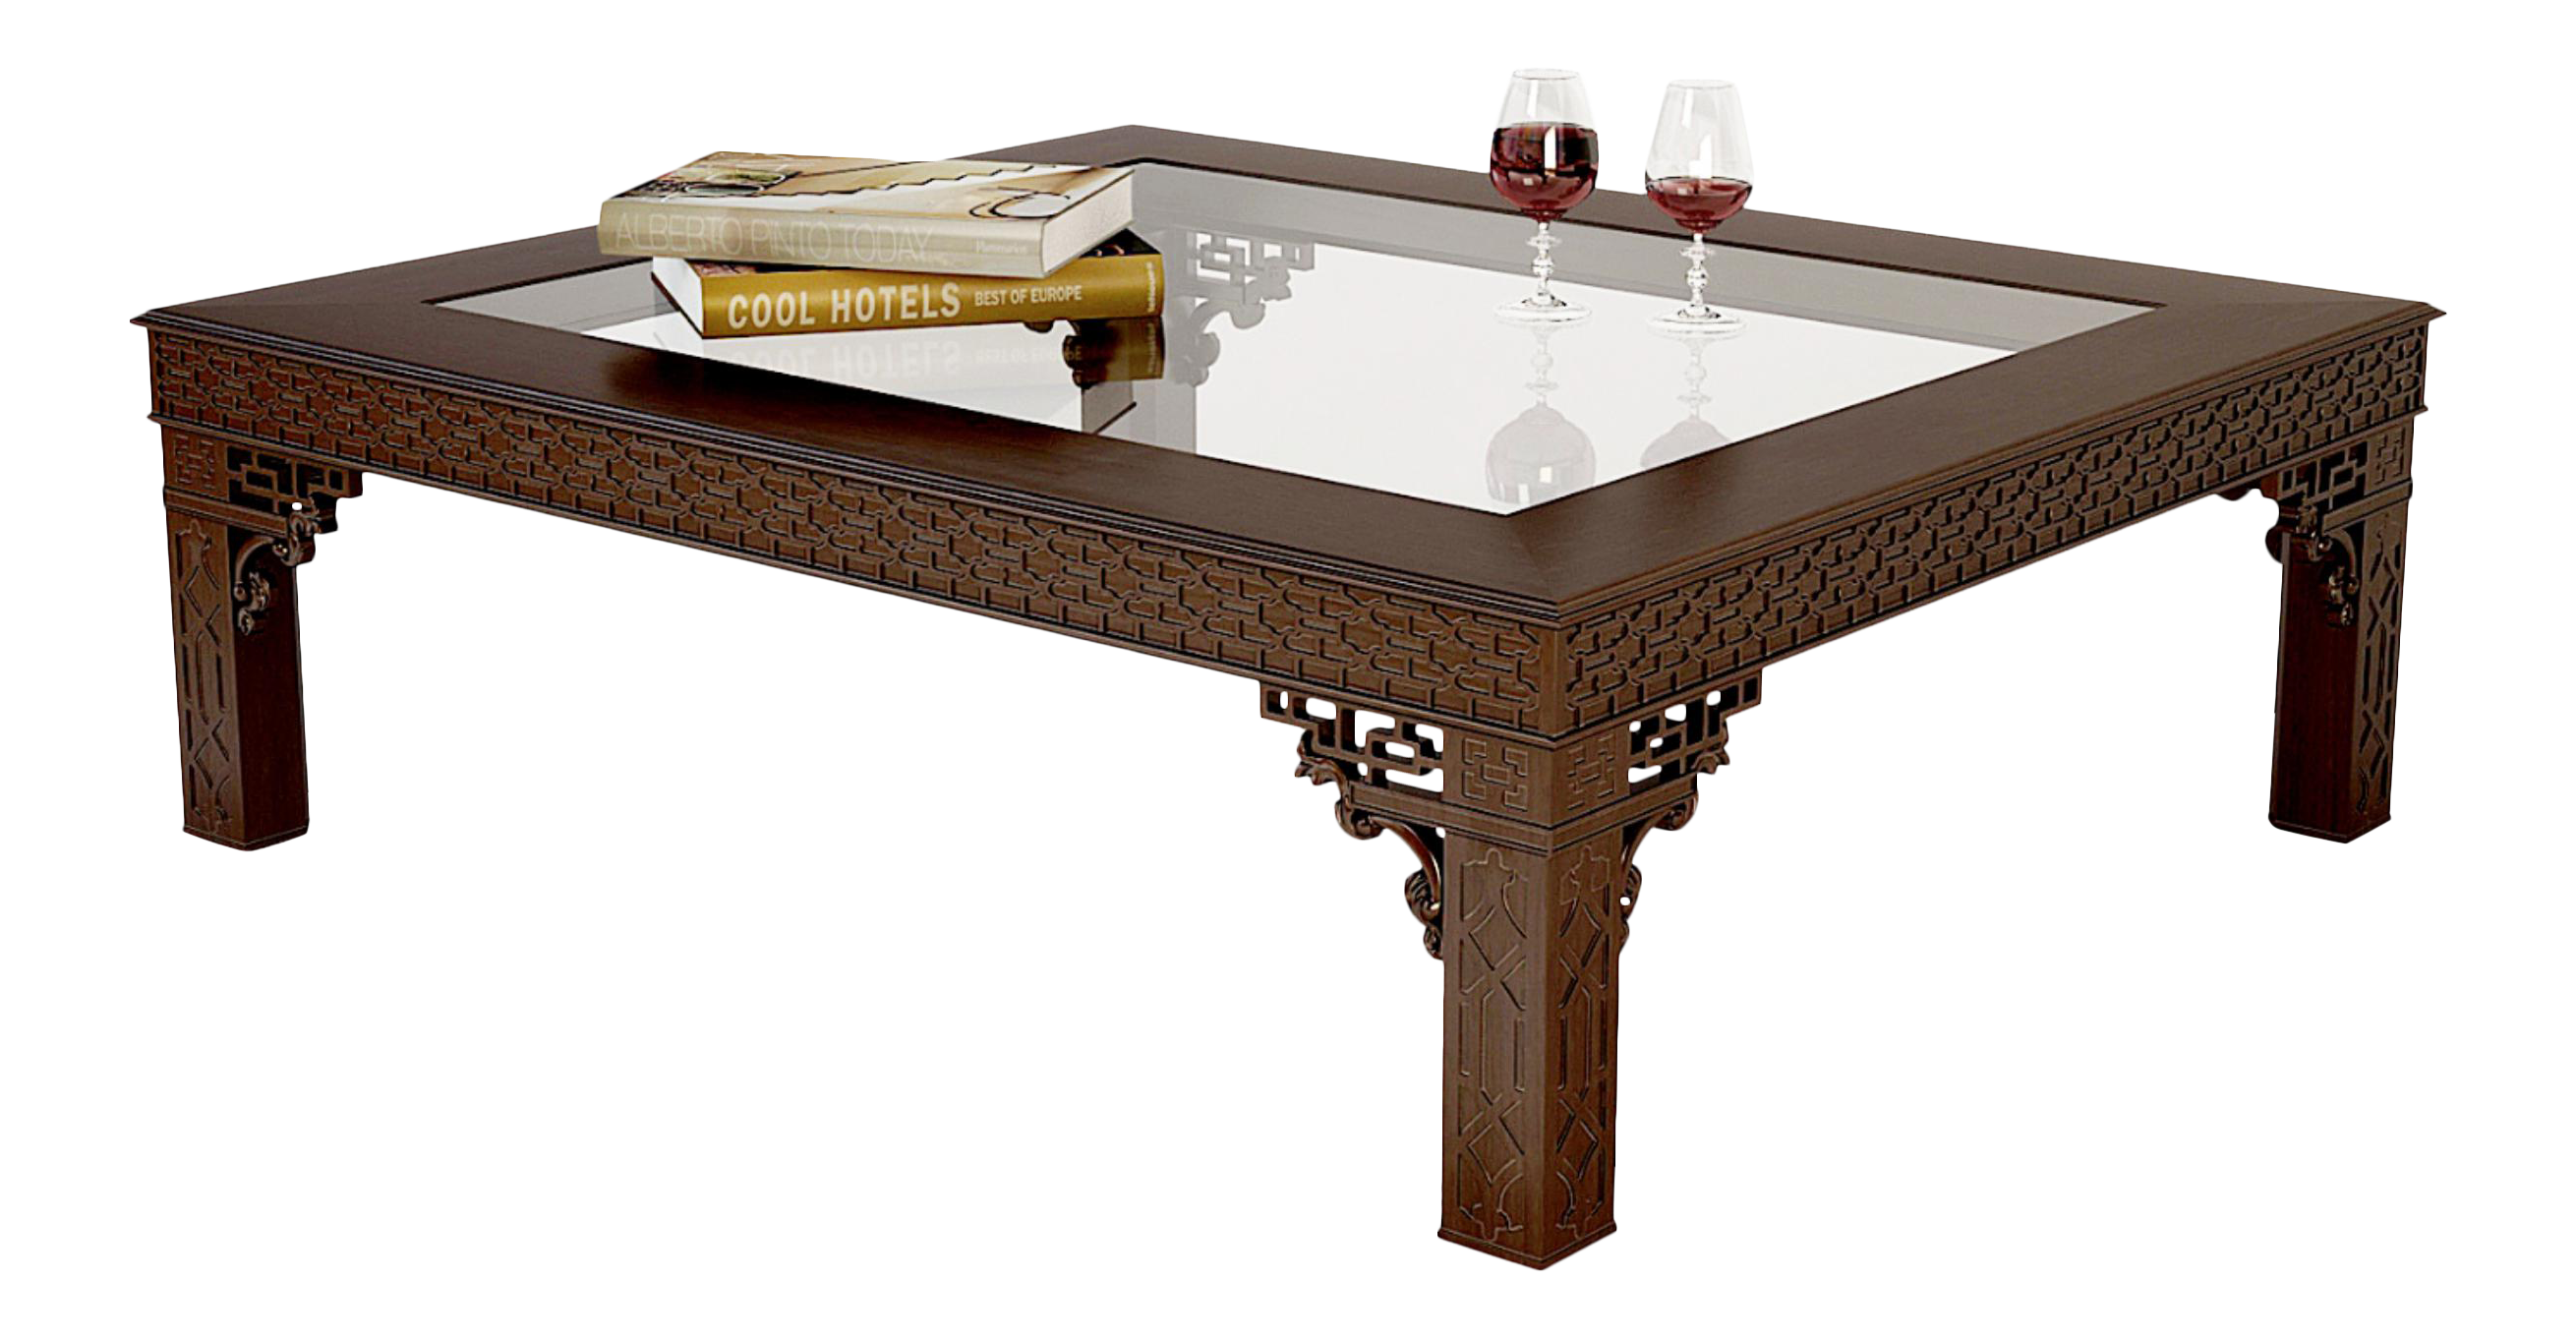 Exceptional Ralph Lauren Large Coffee Table From The Conservatory Garden Collection    Beautiful Fretwork